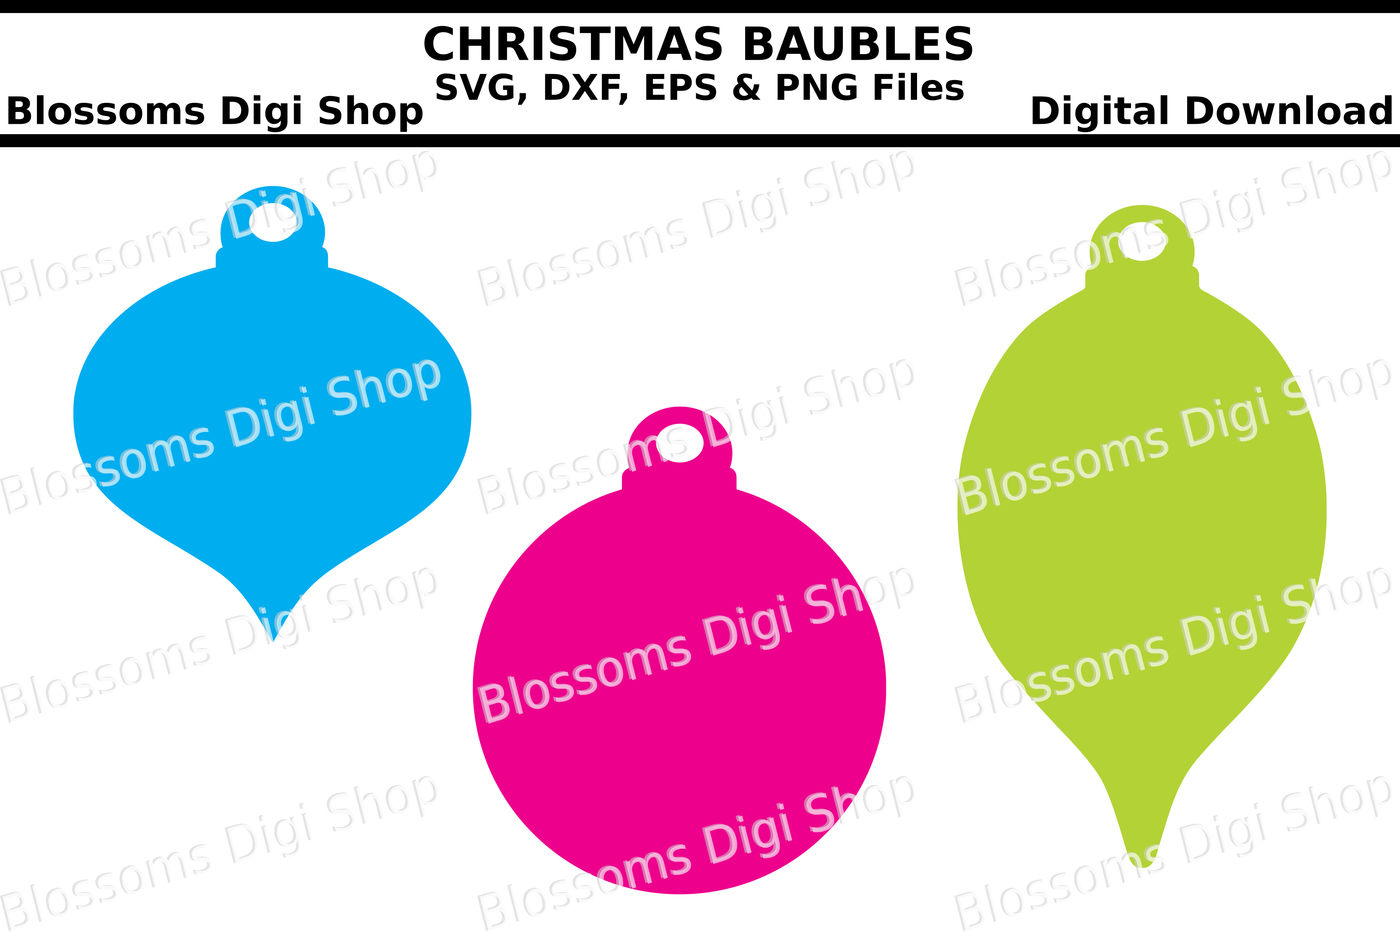 Christmas Baubles Svg Eps Dxf And Png Cut Files By Blossoms Digi Shop Thehungryjpeg Com